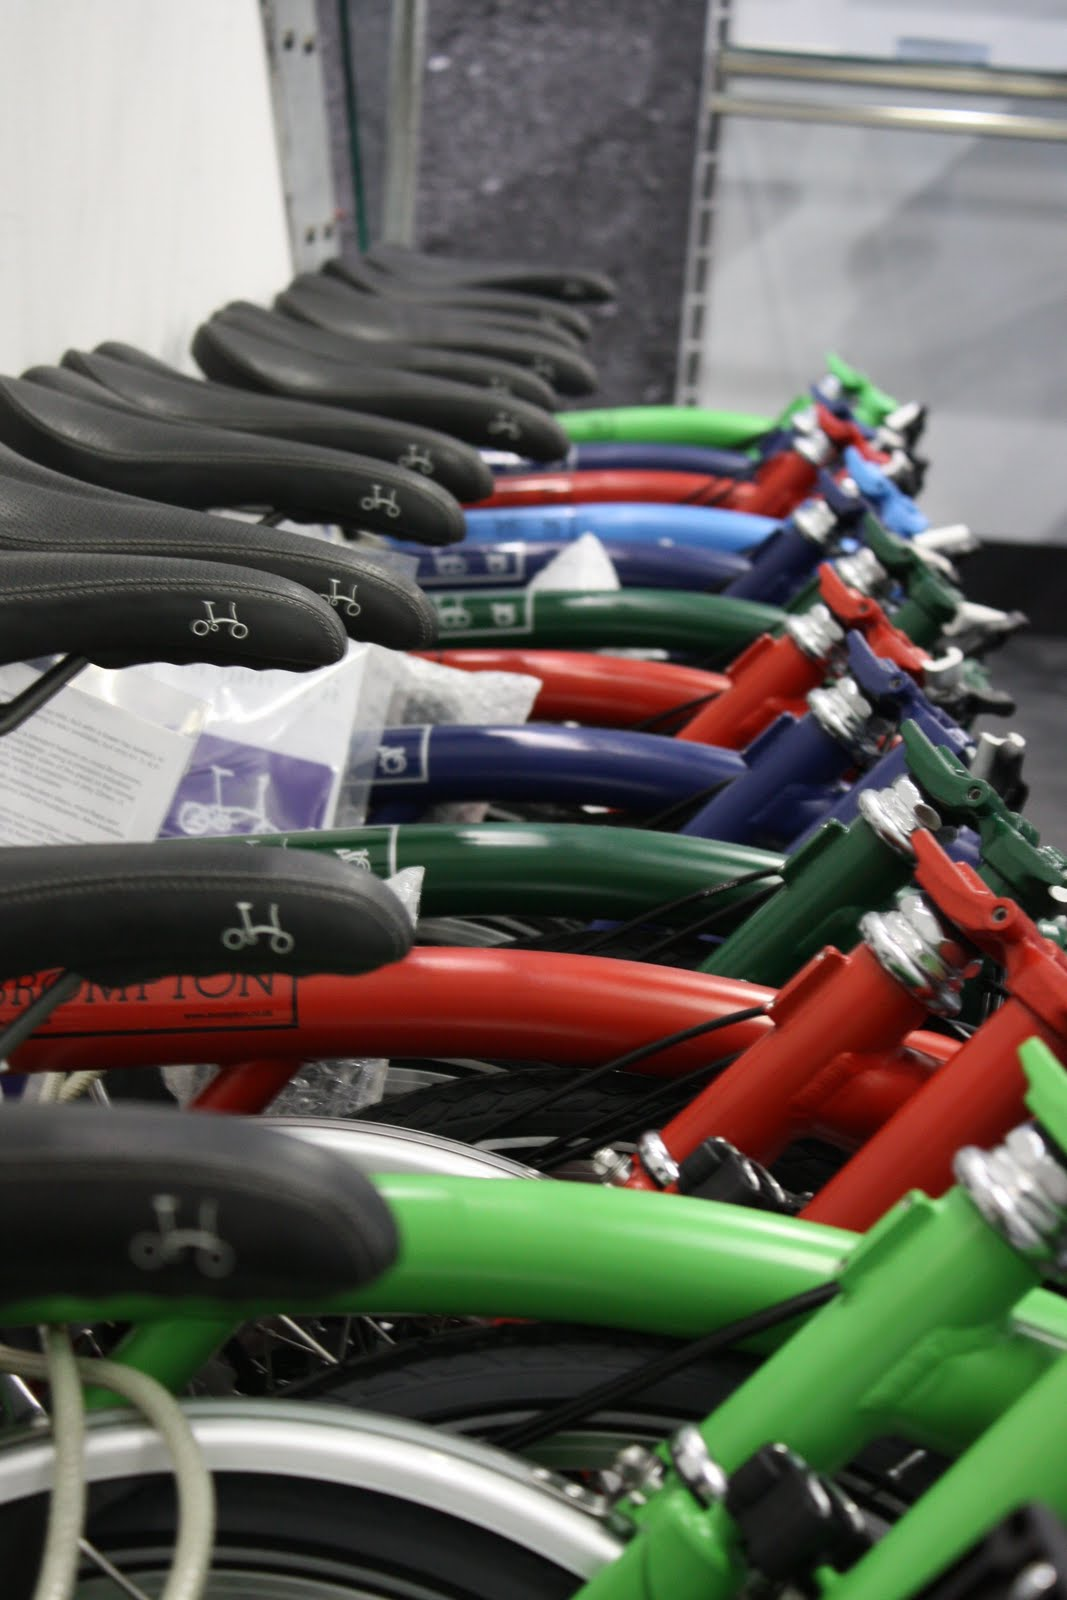 New stock of Bromptons is now in store